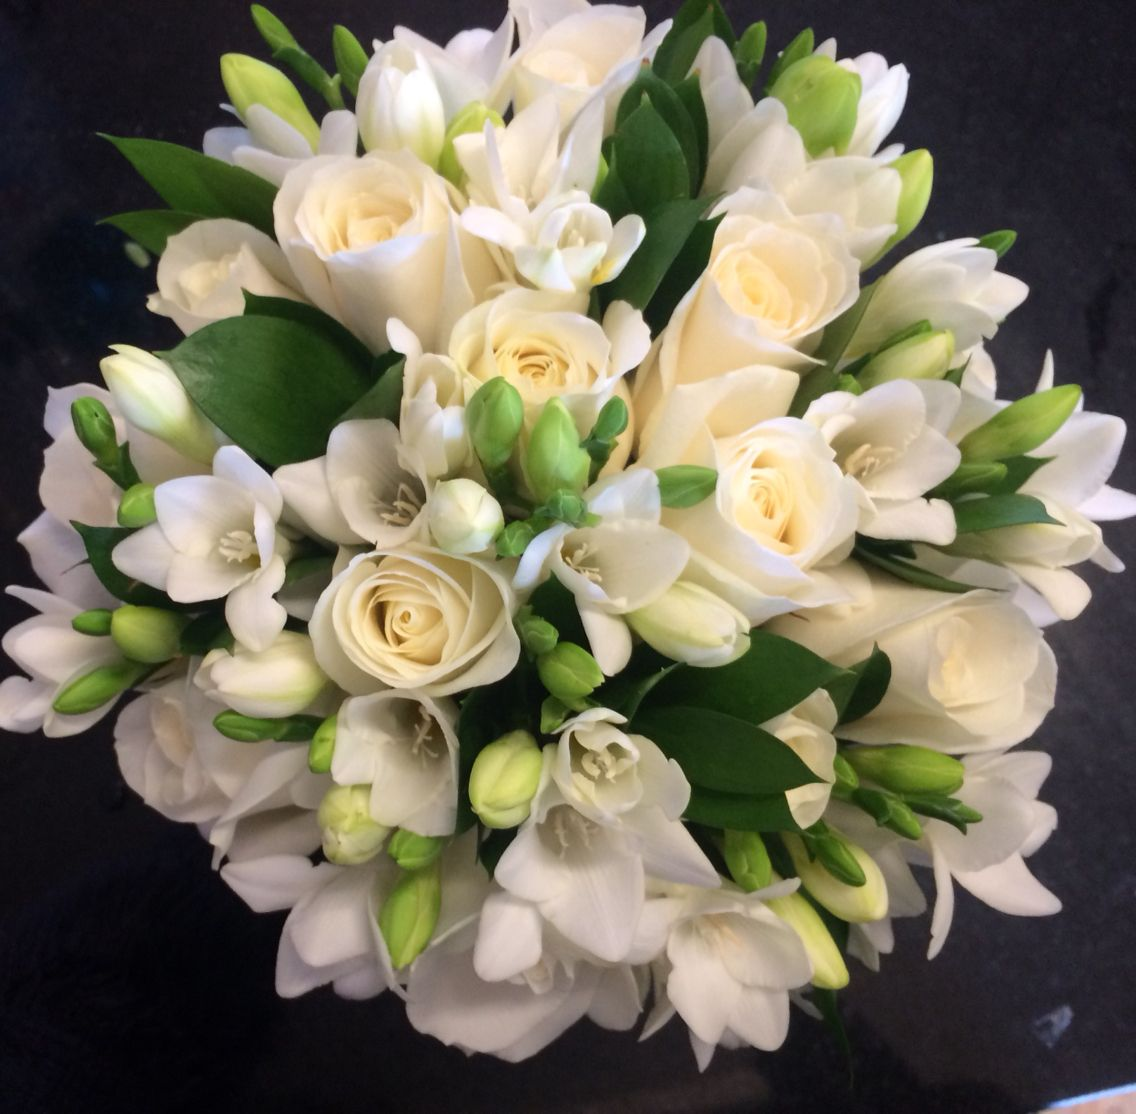 Roses freesia and ruscus pure white and green bouquet this brides roses freesia and ruscus pure white and green bouquet this brides wedding flowers bouquet izmirmasajfo